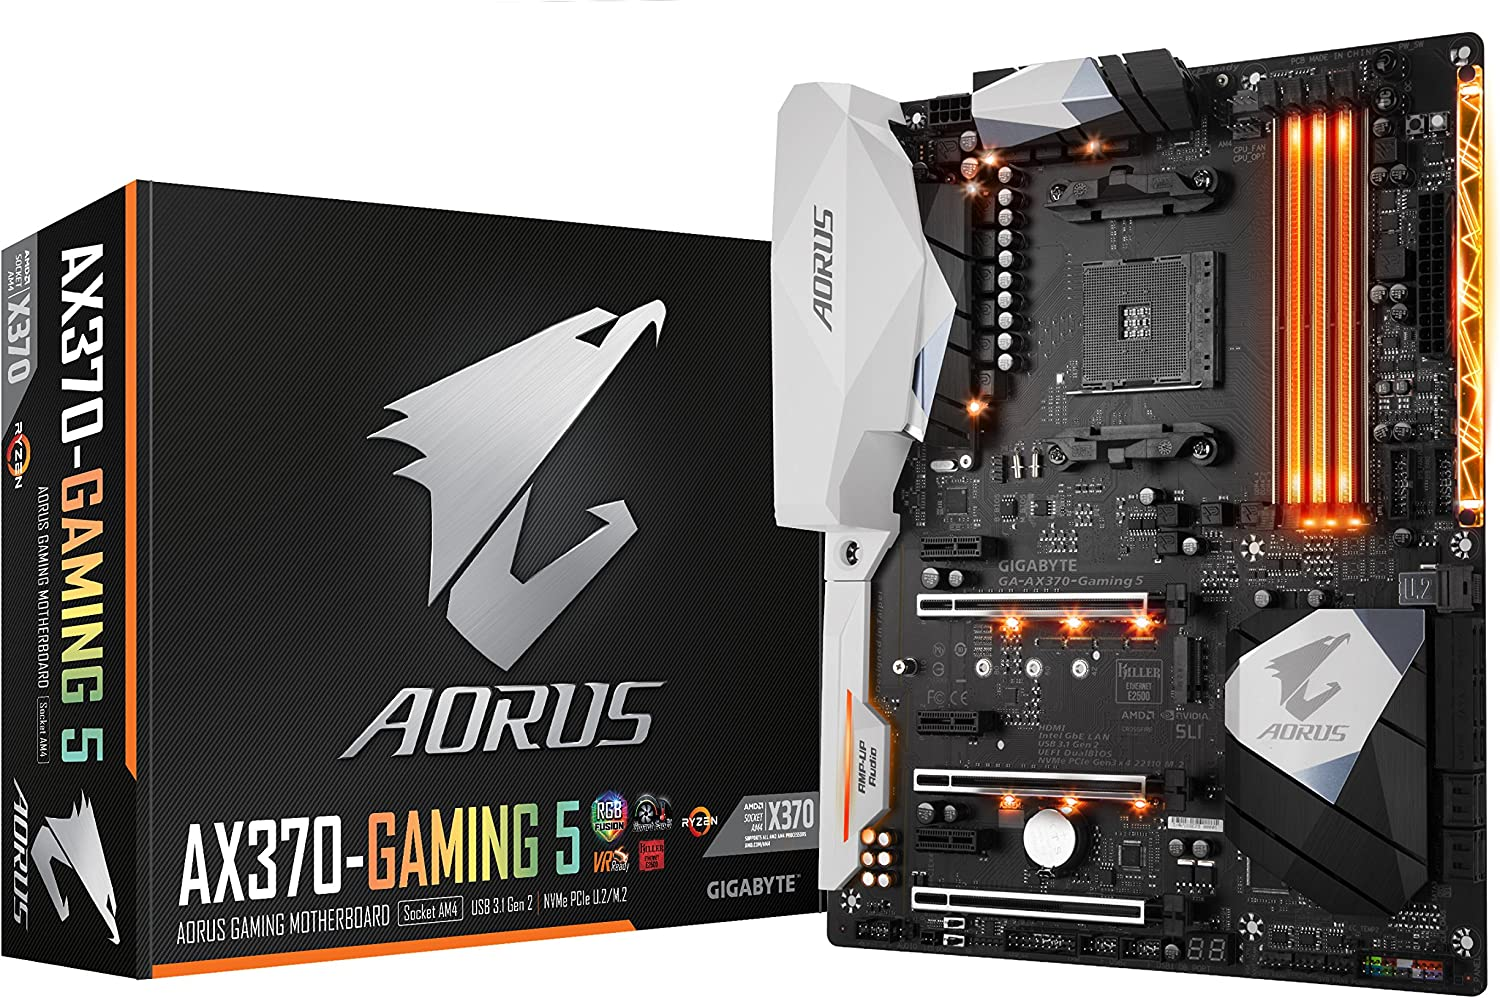 Best Motherboard for Ryzen 7 2700x, DigitalUpBeat - Your one step shop for all your  tech gifts and gadgets